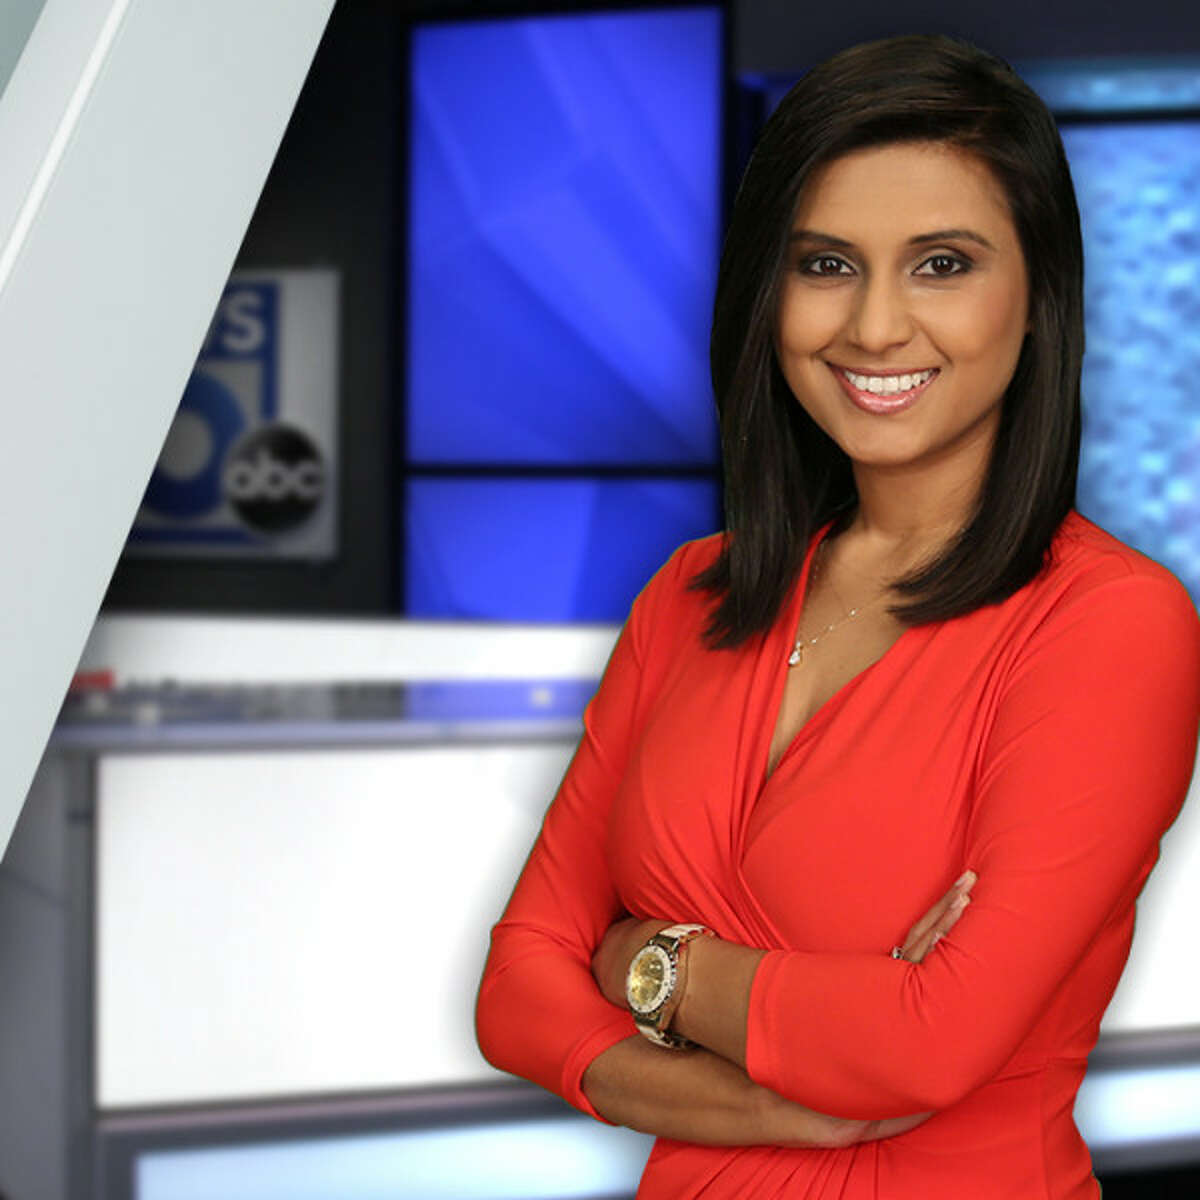 Click through the slideshow for 20 things you don't know about Trishna Begam, anchor/reporter for WTEN.